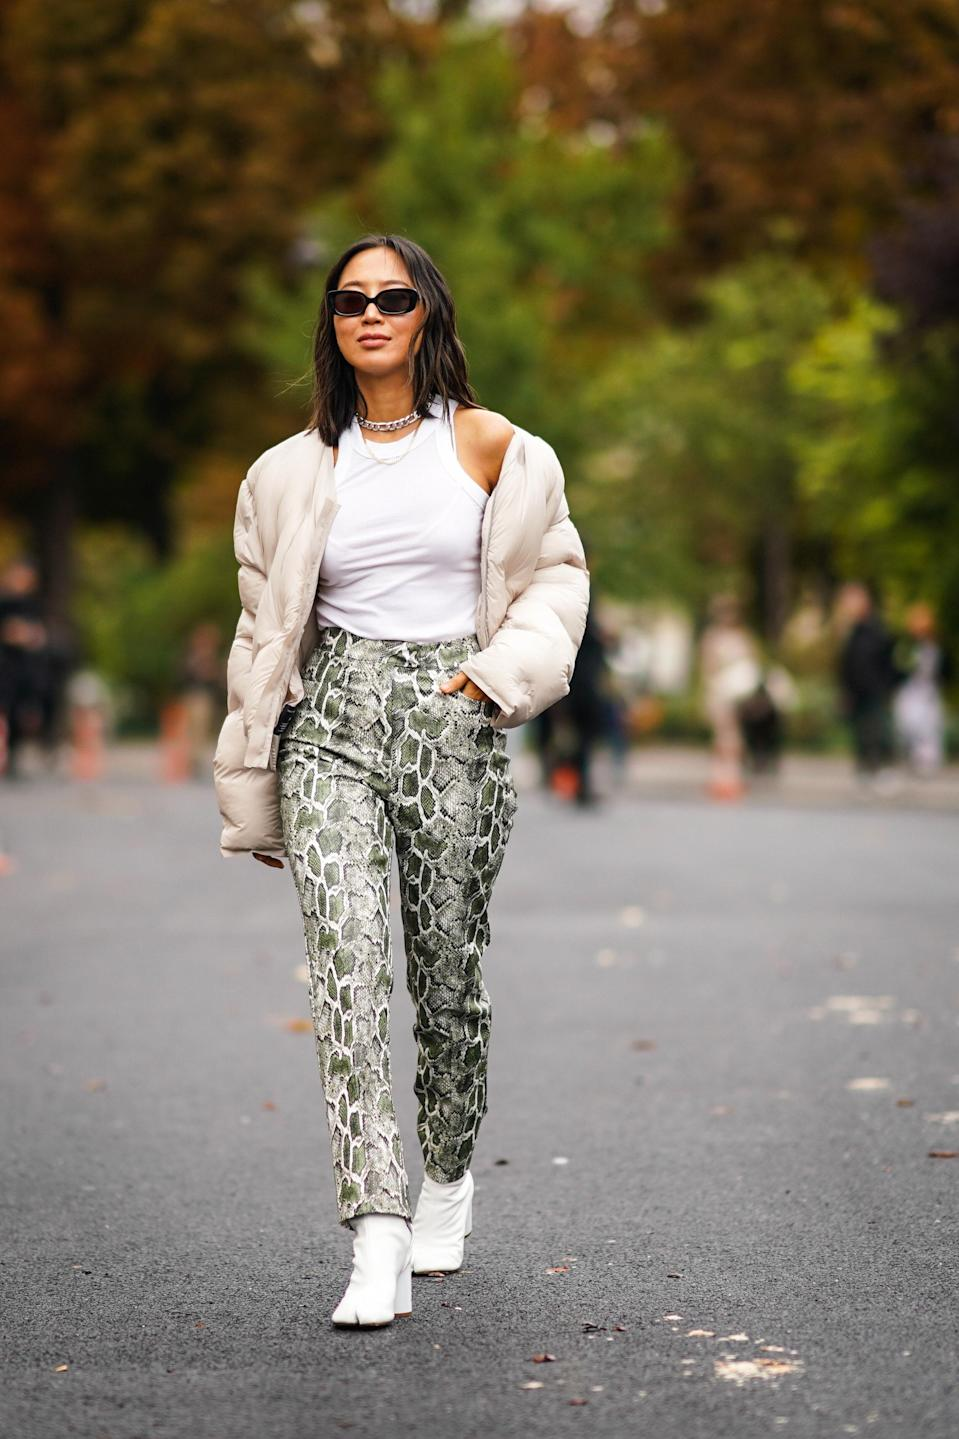 """Everyone has a shirt they wear on constant rotation, but nothing beats the cool factor of <a href=""""https://www.glamour.com/gallery/best-white-tank-tops?mbid=synd_yahoo_rss"""" rel=""""nofollow noopener"""" target=""""_blank"""" data-ylk=""""slk:a tank top"""" class=""""link rapid-noclick-resp"""">a tank top</a>. In addition to being a solid base layer, today's tanks play with the neckline, whether it's through asymmetrical cuts or ultra-thin shoulder straps meant to be shown off on sunny days. Whether you style yours with a pair of comfy <a href=""""https://www.glamour.com/gallery/best-sweat-shorts?mbid=synd_yahoo_rss"""" rel=""""nofollow noopener"""" target=""""_blank"""" data-ylk=""""slk:sweat shorts"""" class=""""link rapid-noclick-resp"""">sweat shorts</a> or layer it underneath a slip dress, no closet is complete without one."""